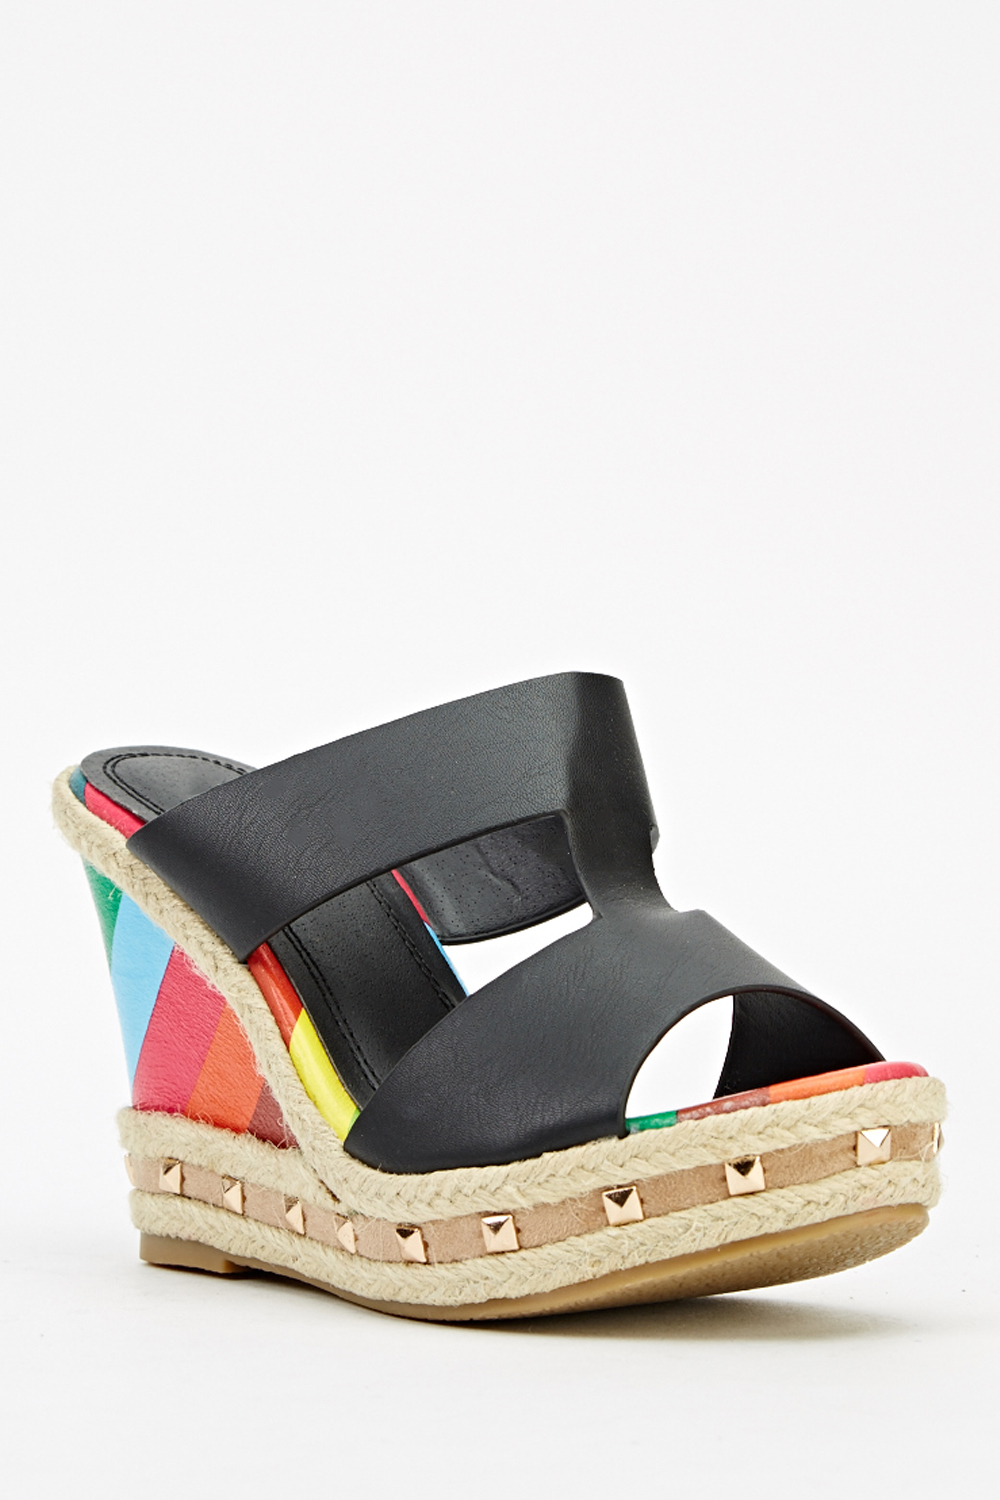 3f139601c4b Contrast Studded Rainbow Wedge Sandal - Just £5